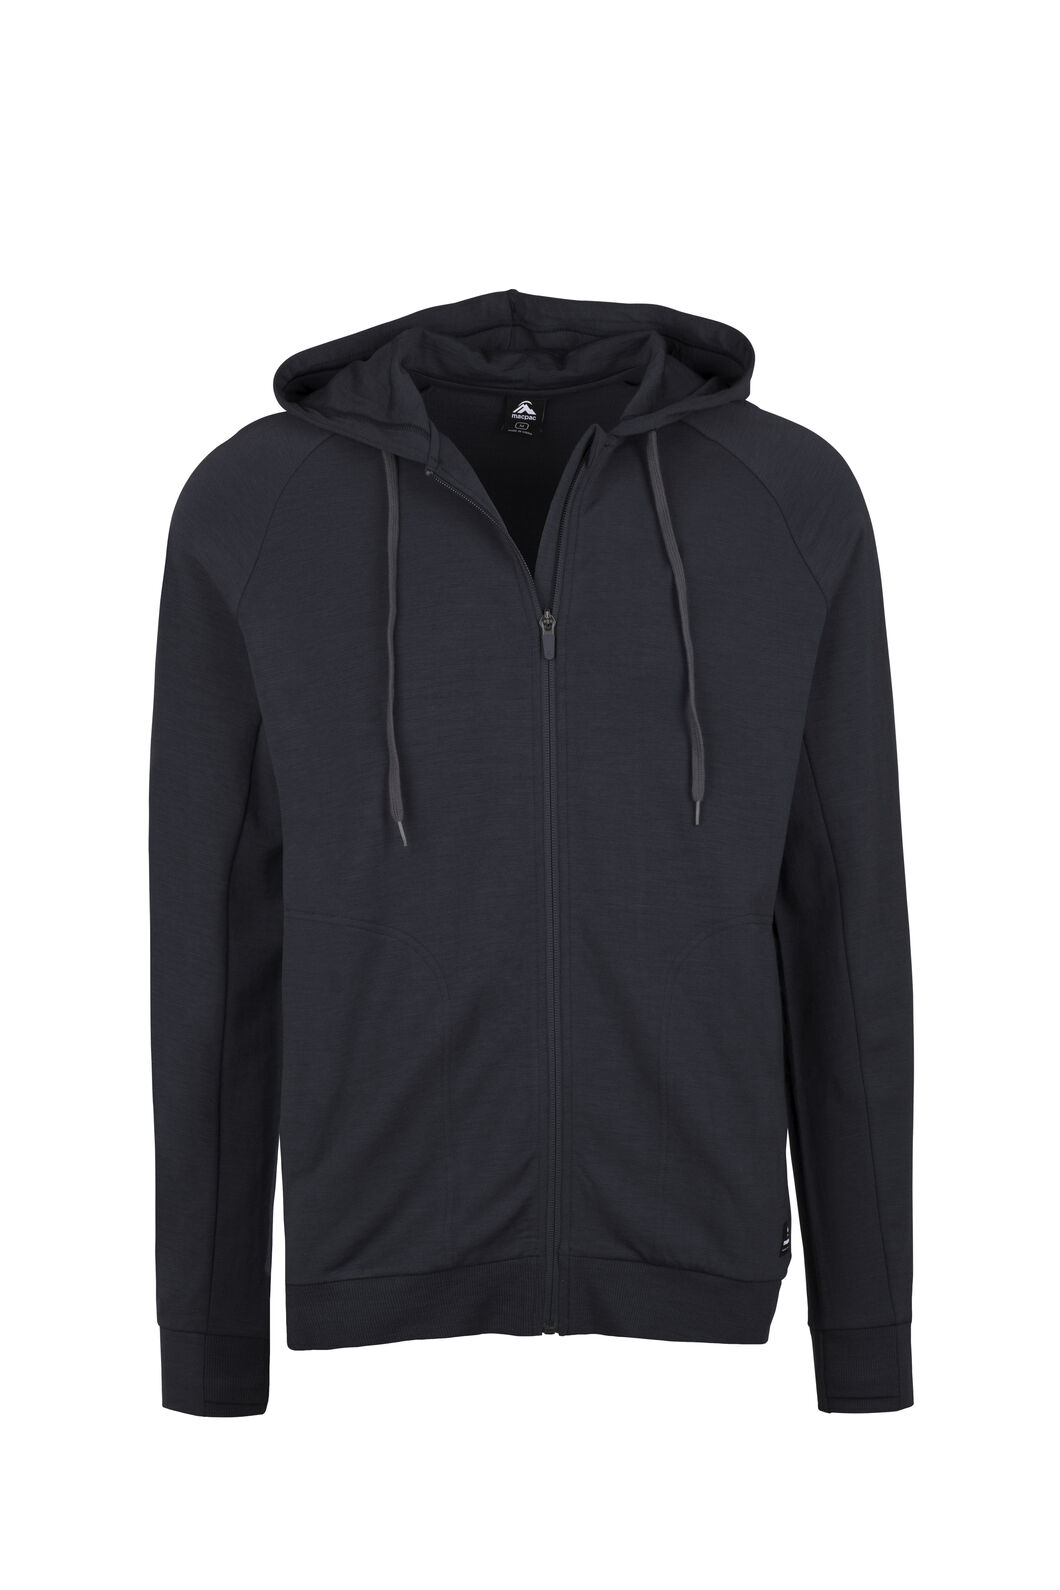 Macpac No Borders Merino Hoody - Men's, Black, hi-res